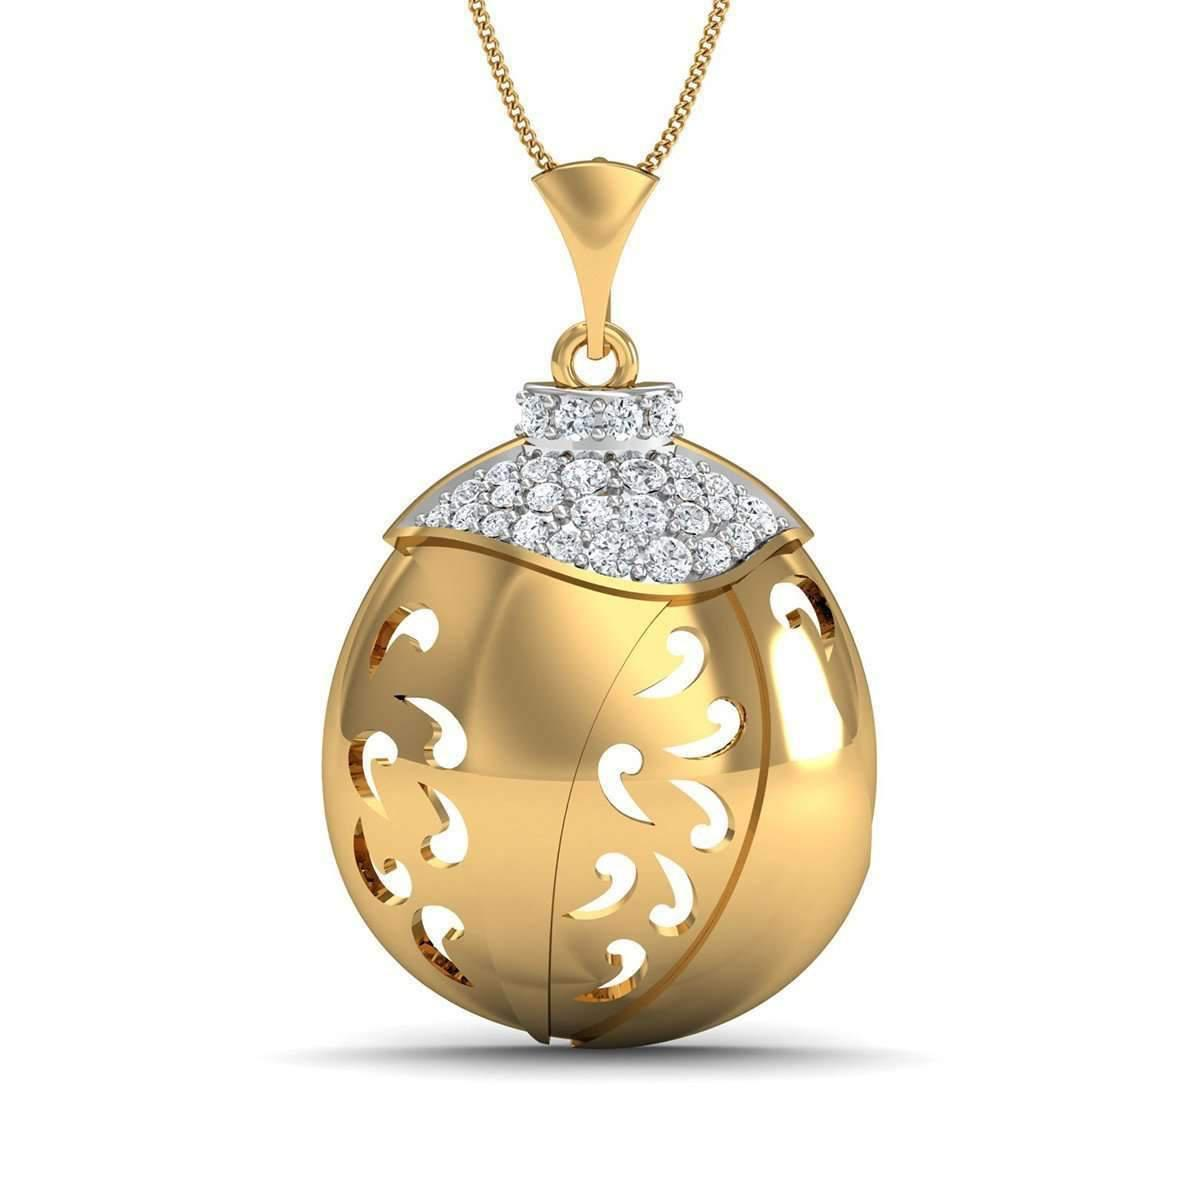 Diamoire Jewels Nature Inspired 18kt Rose Gold Pave Pendant Handset with Premium Diamonds KMjqXuhC